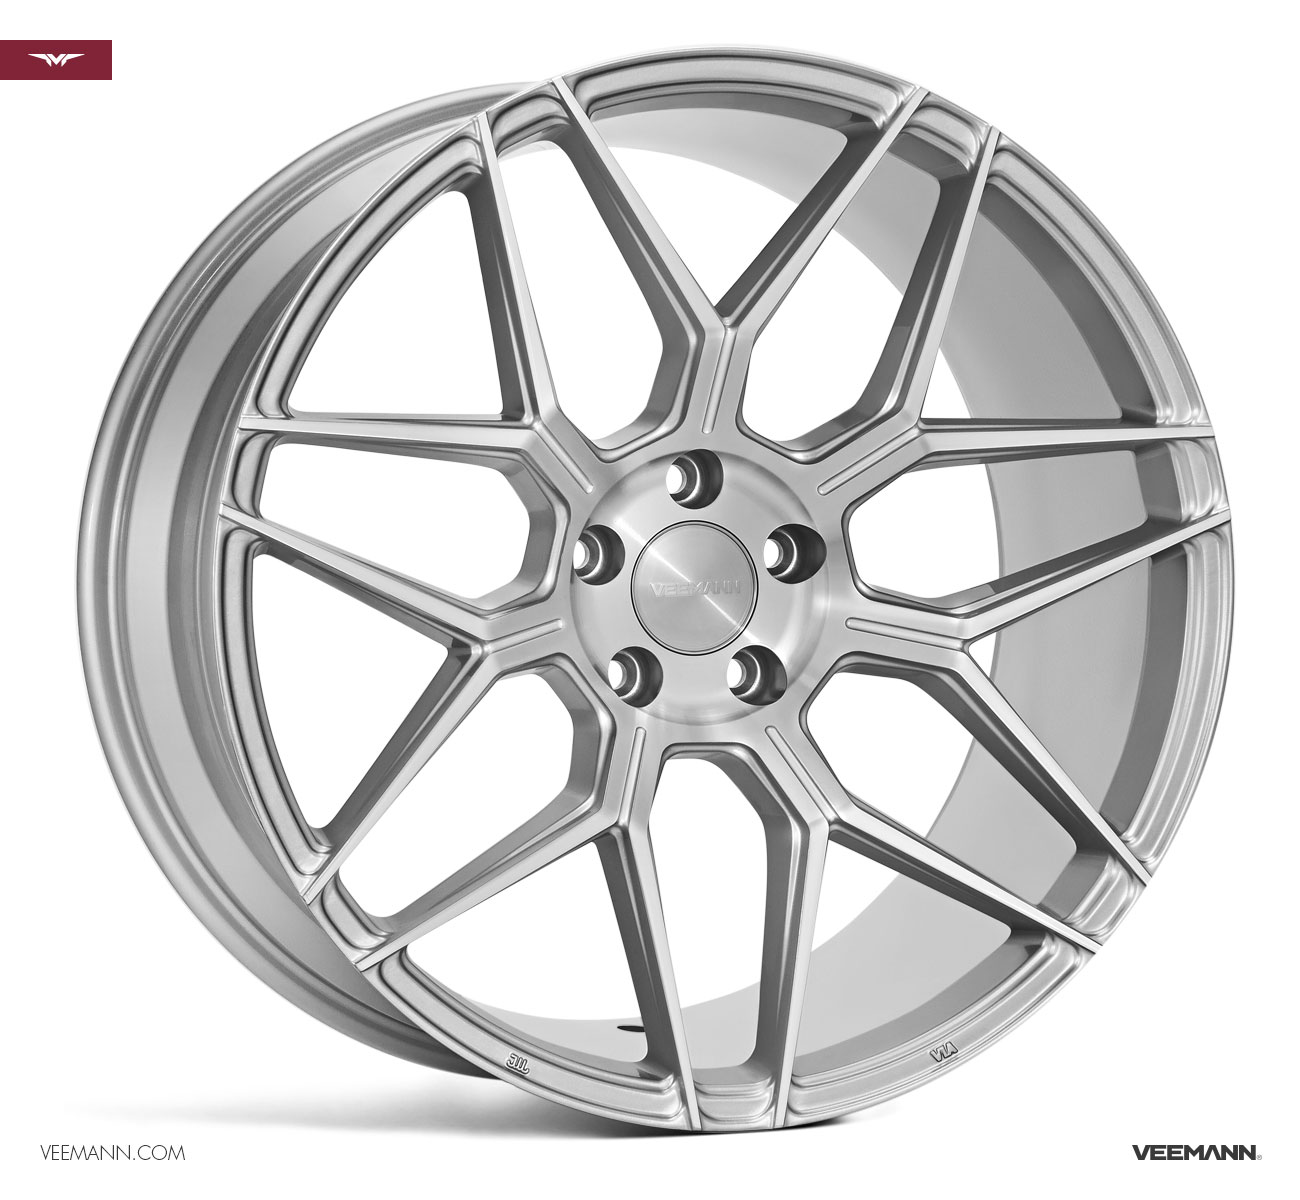 "NEW 19"" VEEMANN V-FS38 ALLOYS IN SILVER POL WITH WIDER 9.5"" REAR"